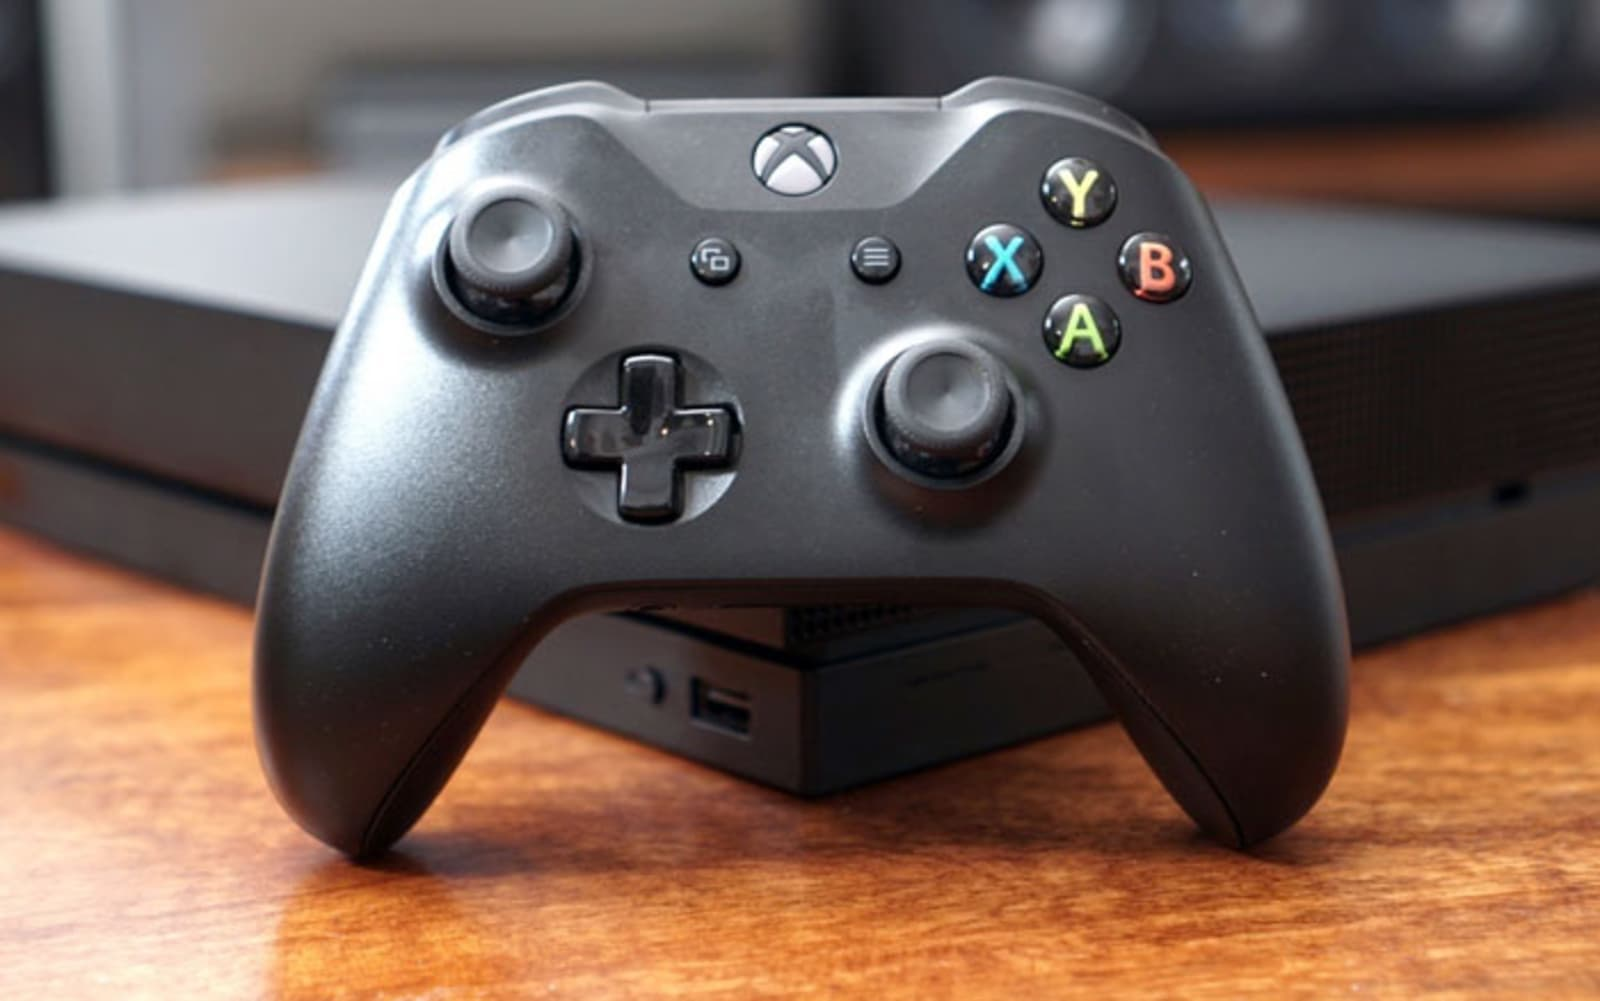 Microsoft tests content filters for Xbox messages